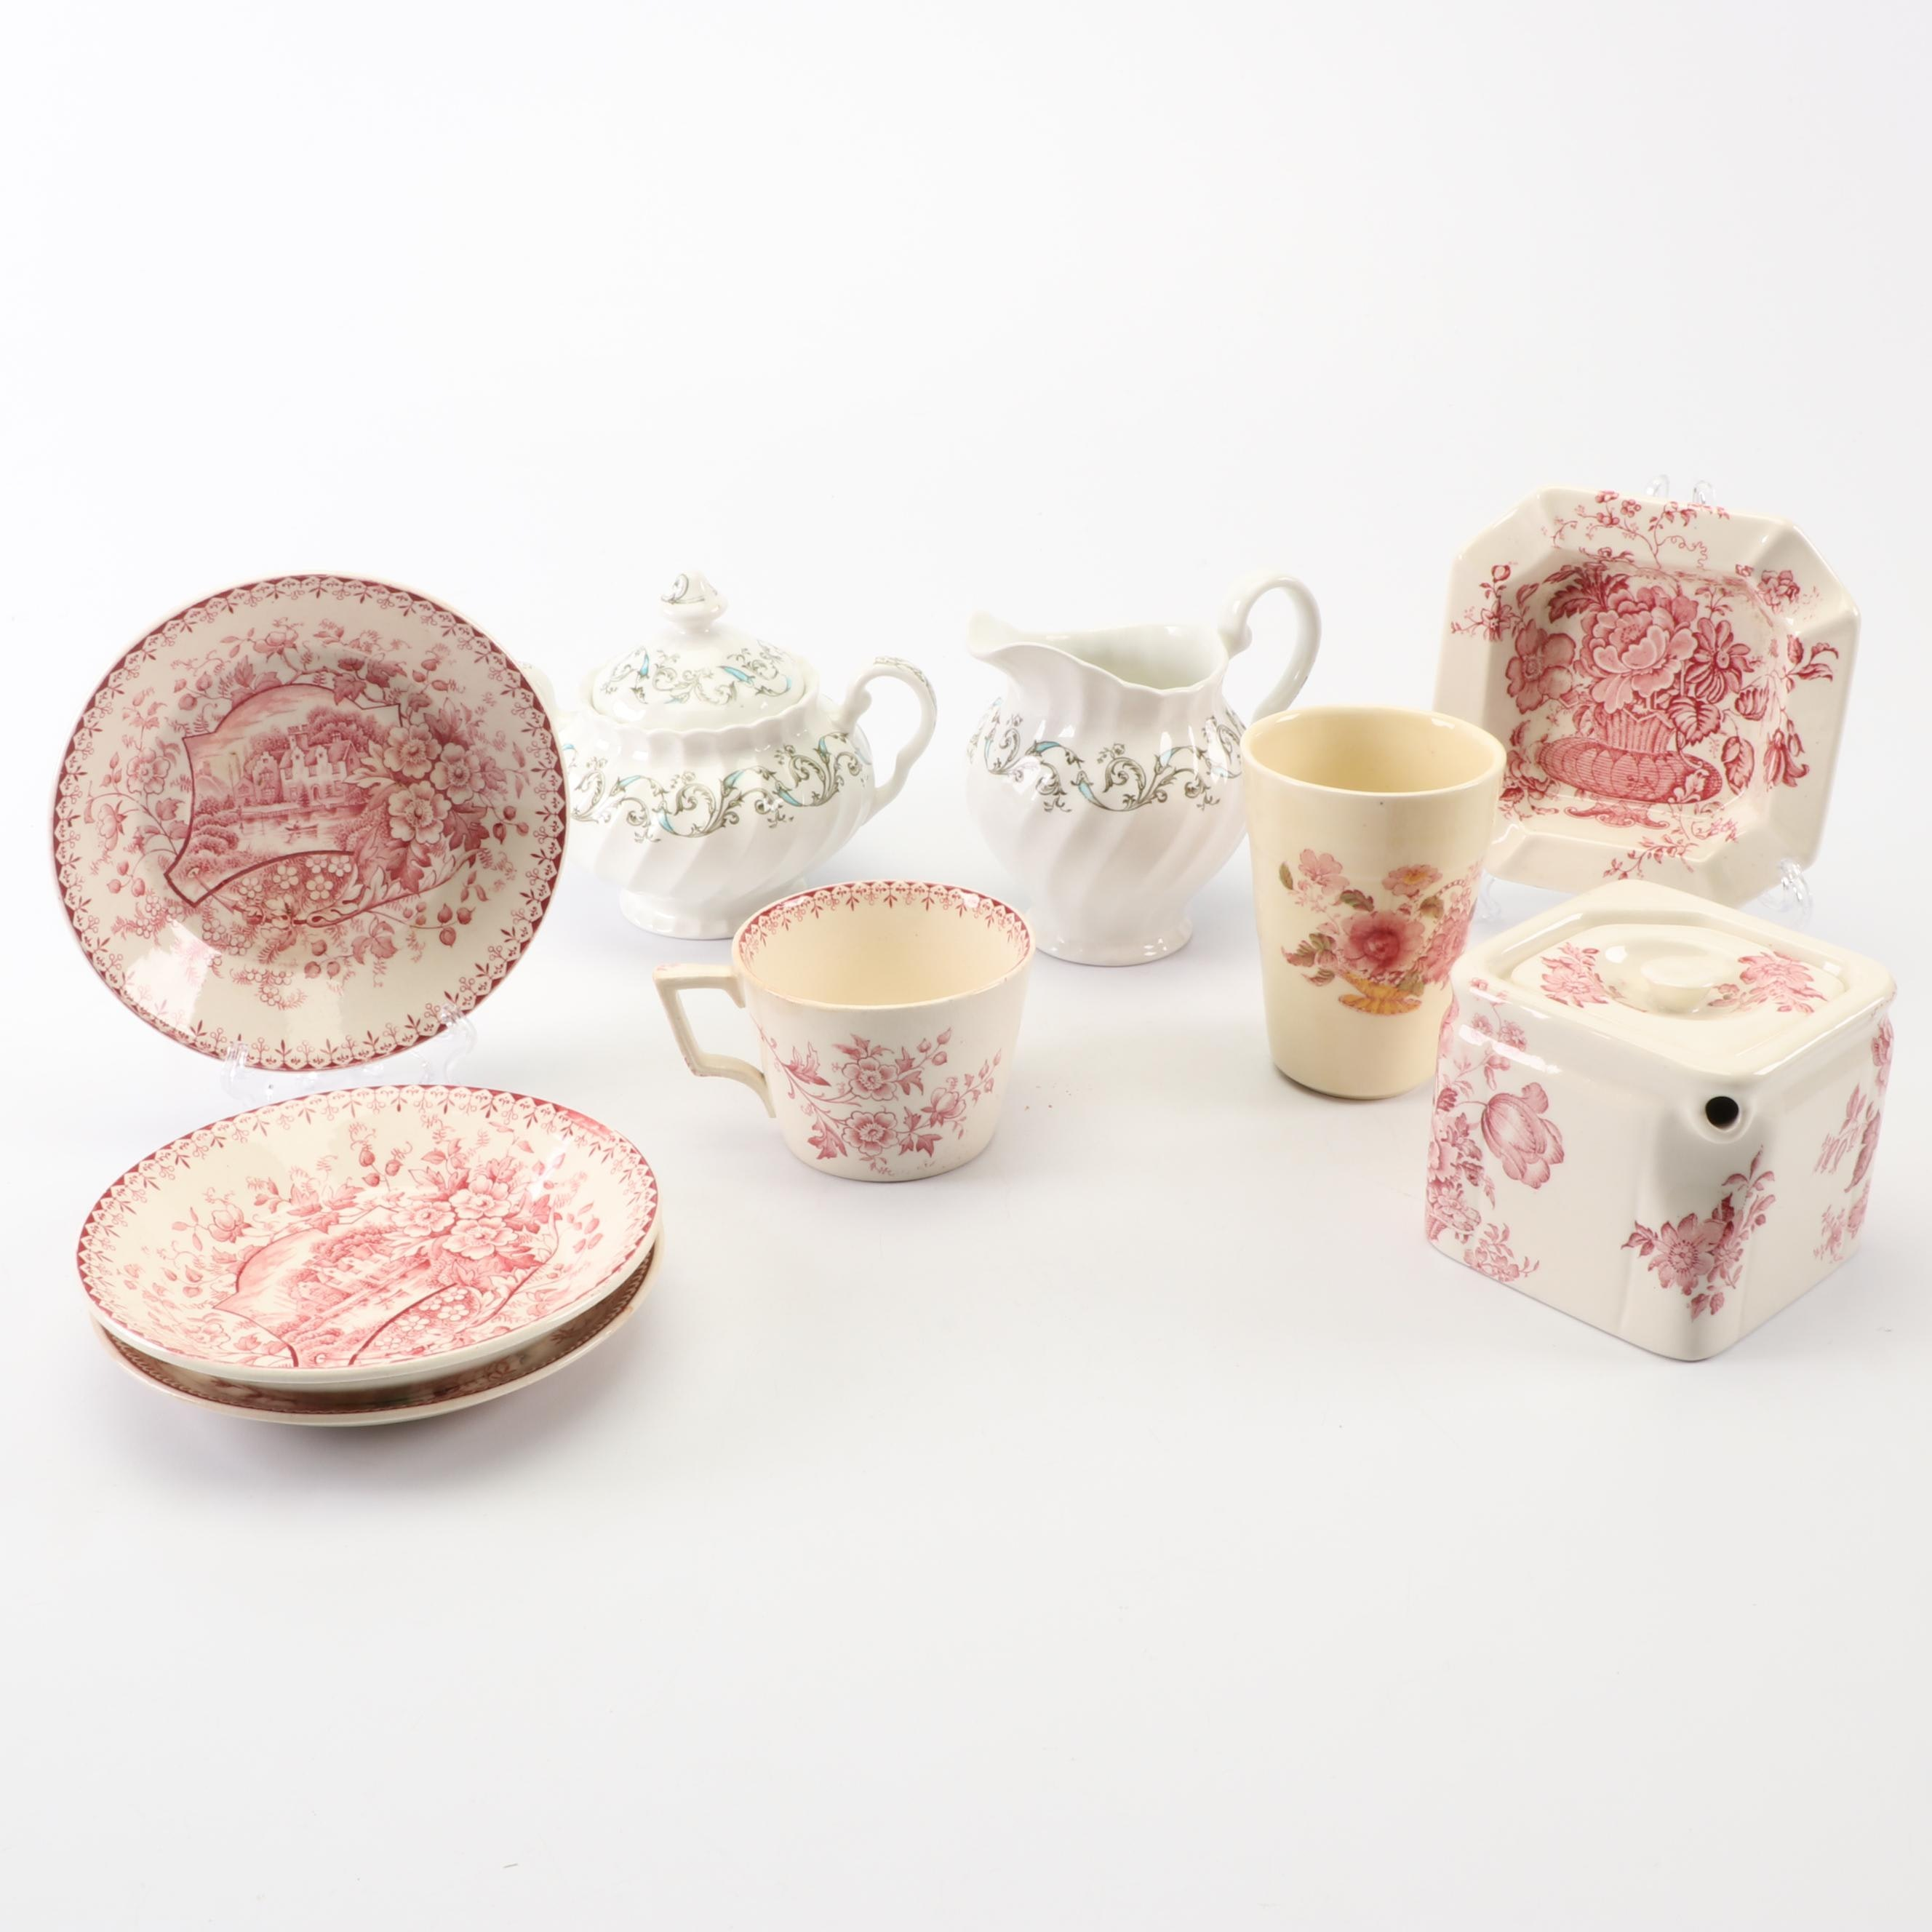 English Tableware and Ash Receiver including Whittaker & Co.